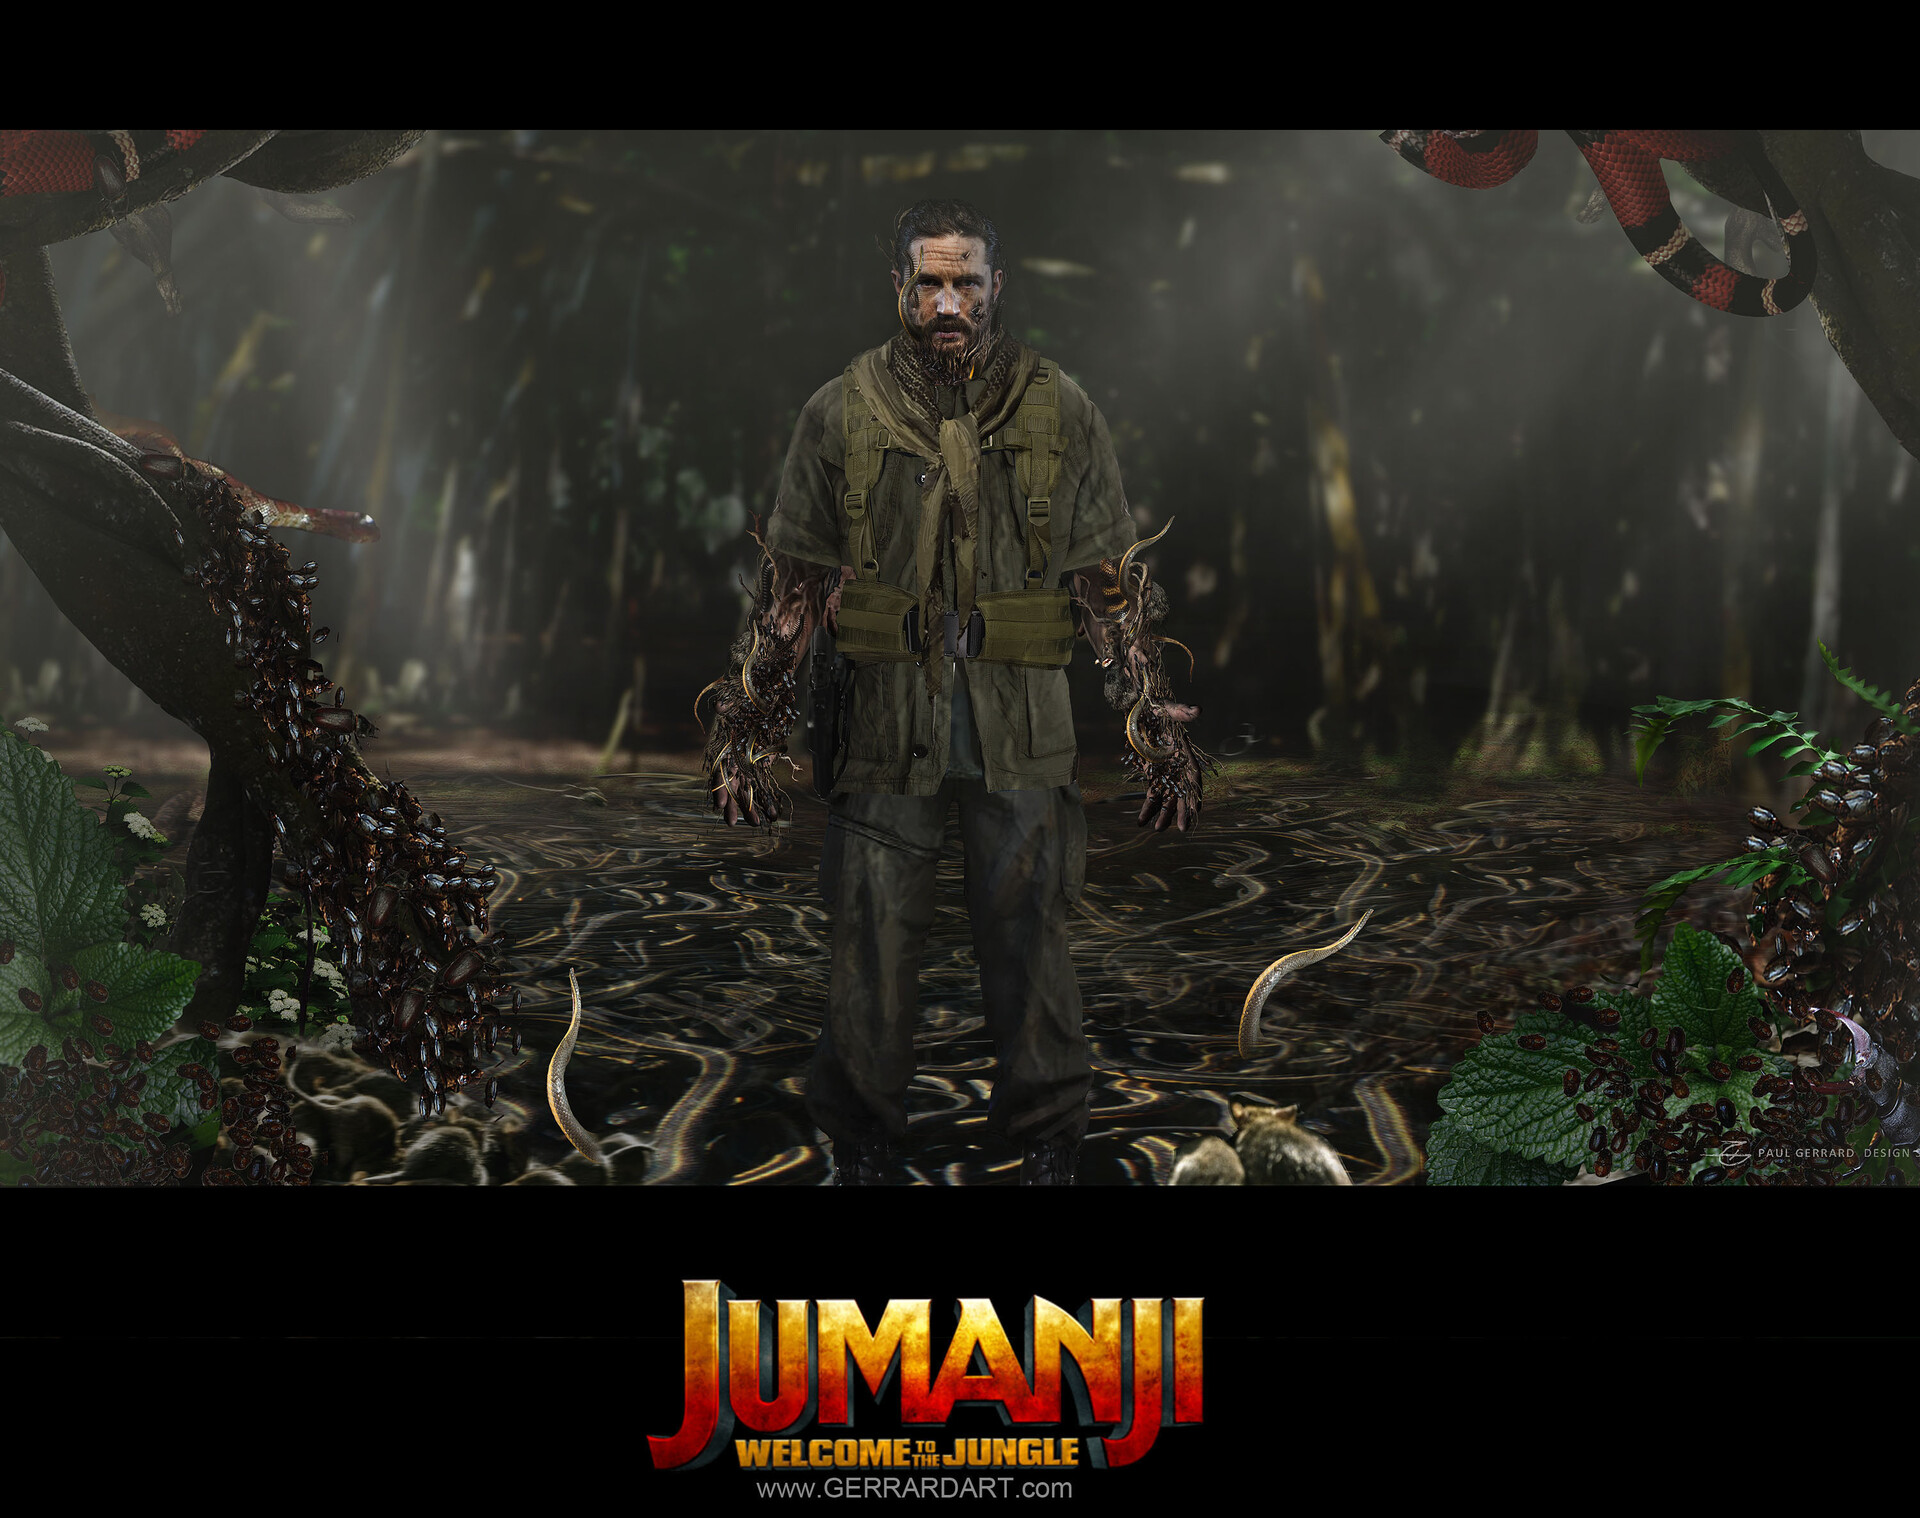 Previously unreleased concept art from the movie JUMANJI. I believe some of these scenes where cut and using an actor that never got cast.